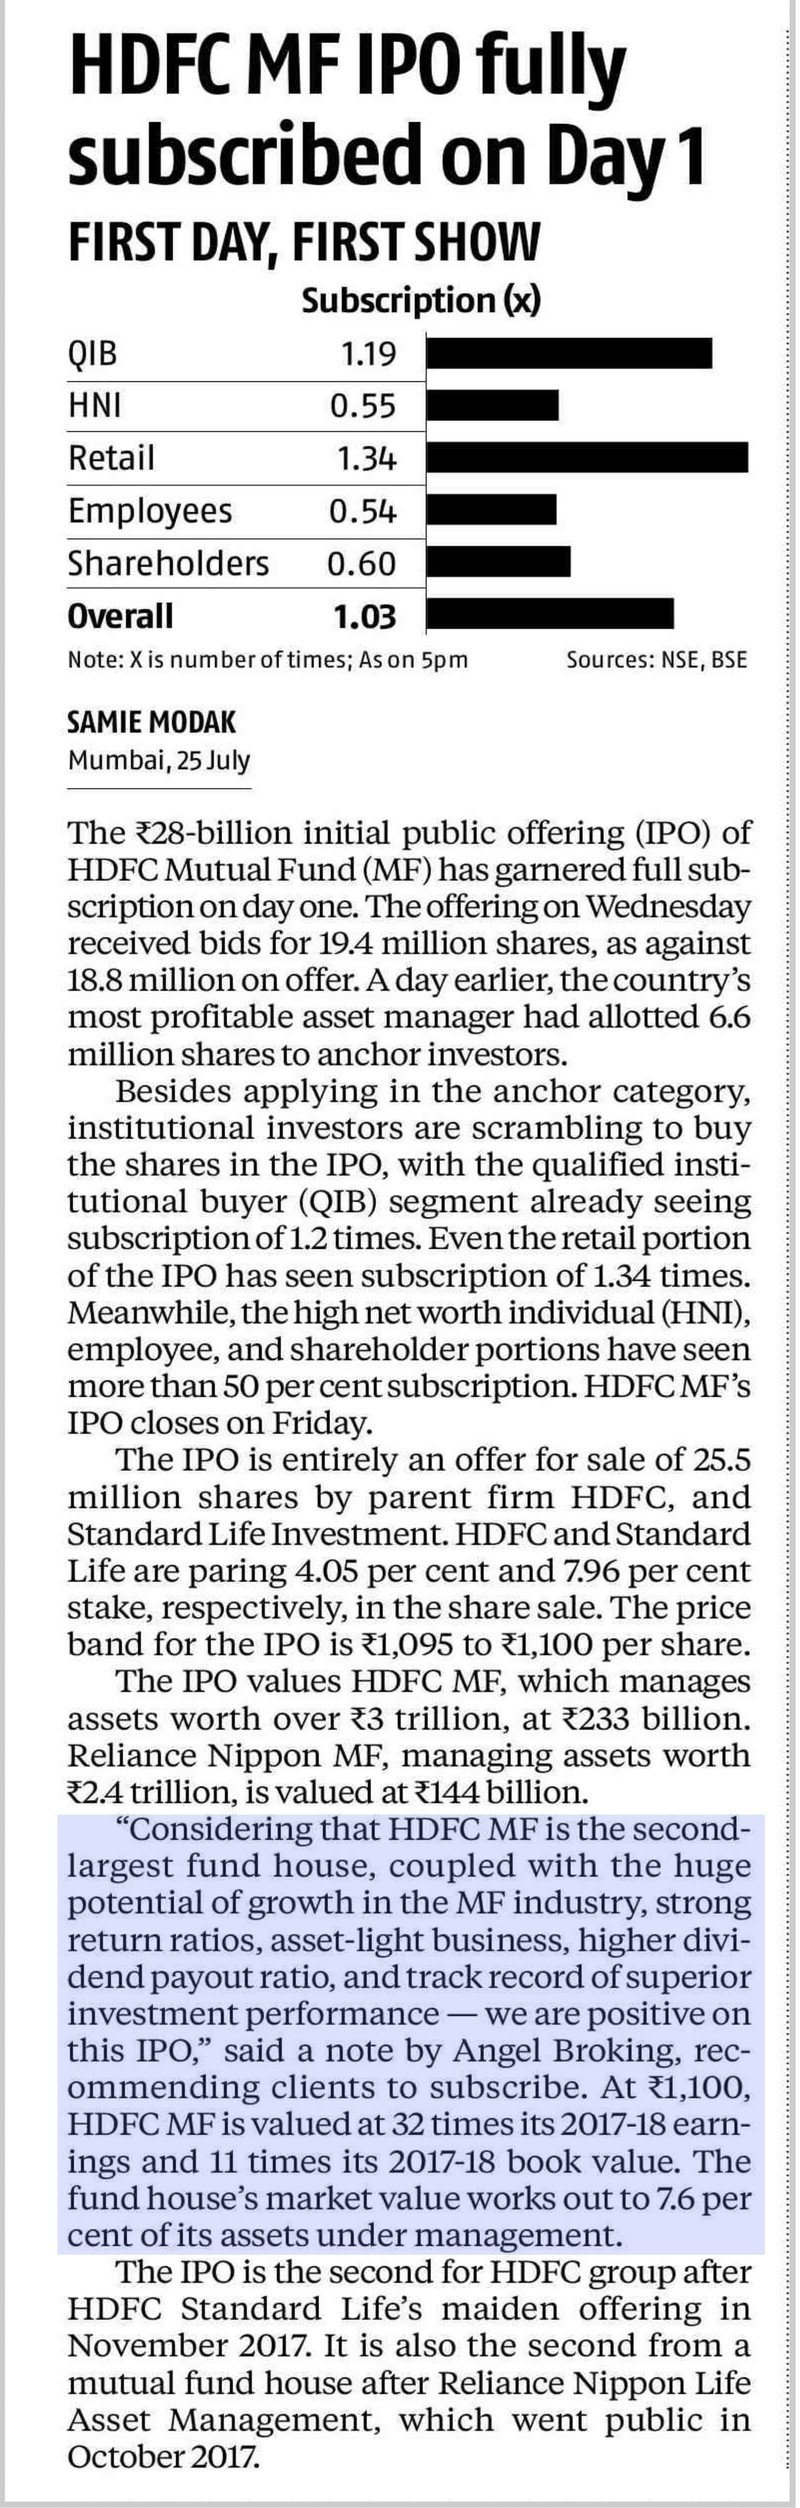 HDFC MF IPO fully subscribed on Day 1